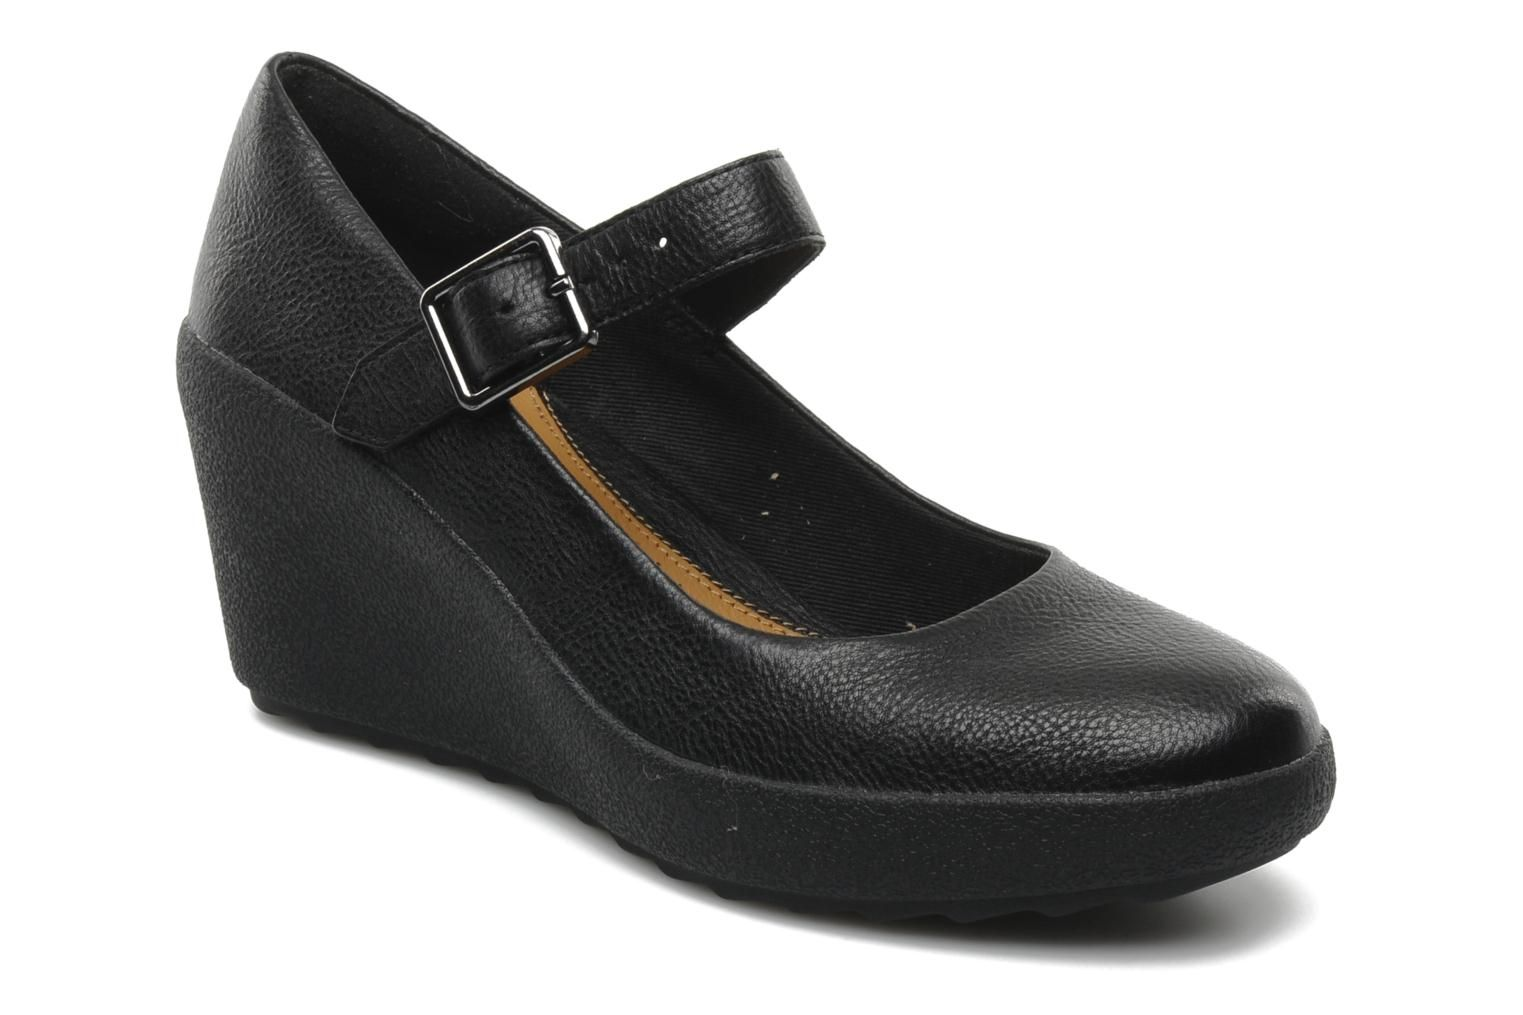 Clarks Black Patent Wedge Shoes